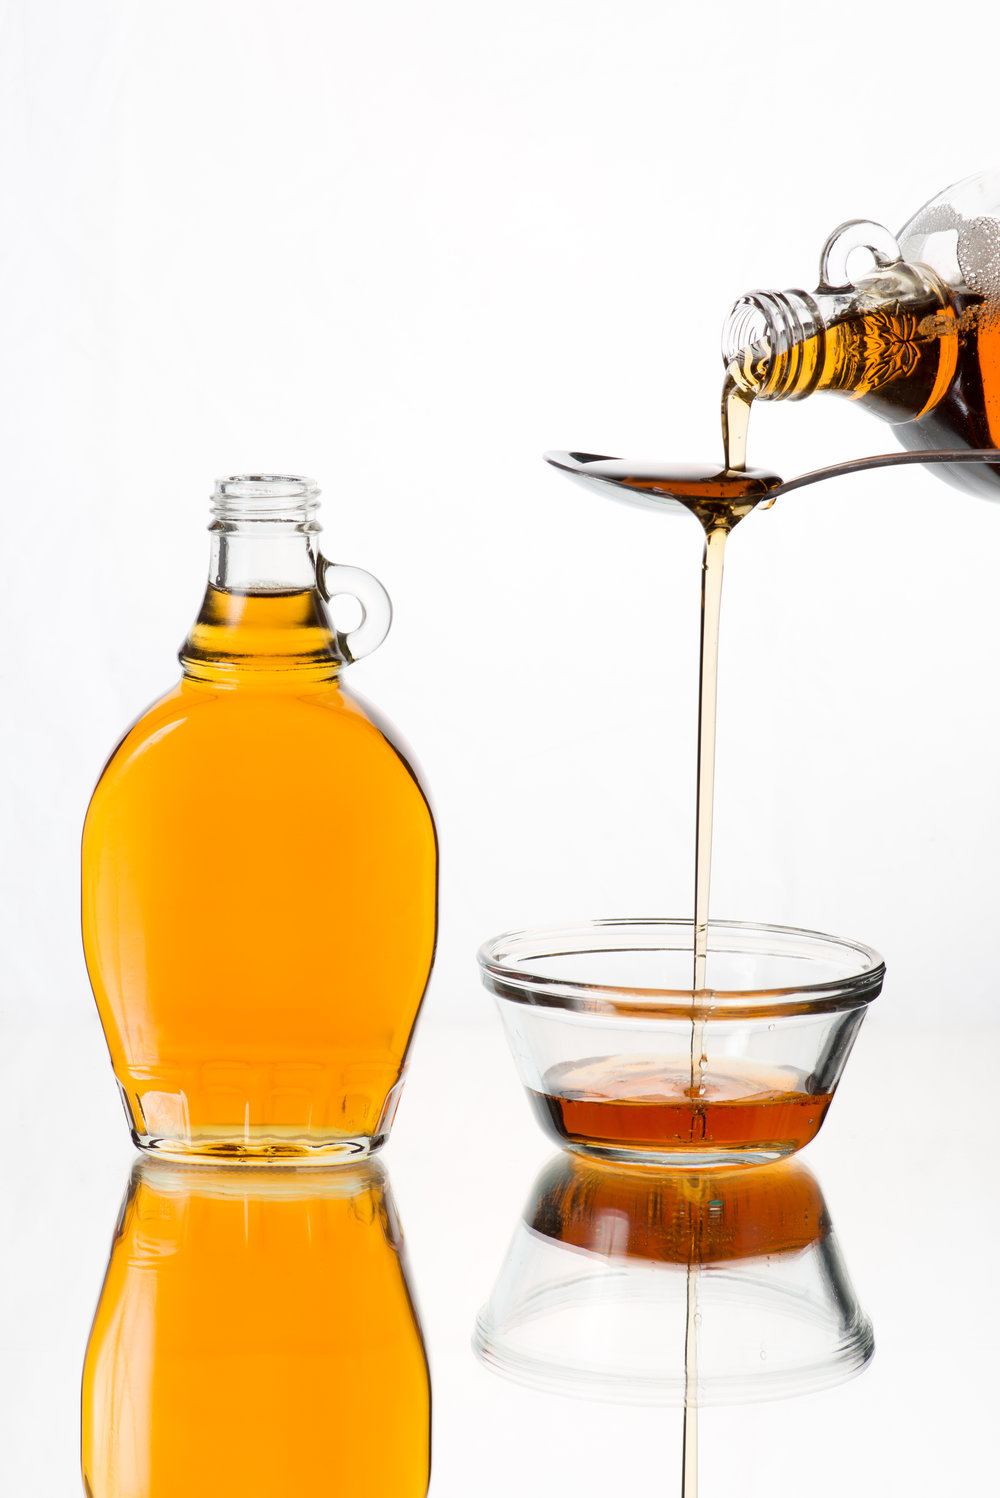 Maple Syrup - Maple syrup is an unrefined natural sweetener that goes into our drinks just as pure as it comes out of the tree.  It provides a unique taste to our exclusive syrup blend. It's lower in calories than honey but also contains antioxidants and nutrients.